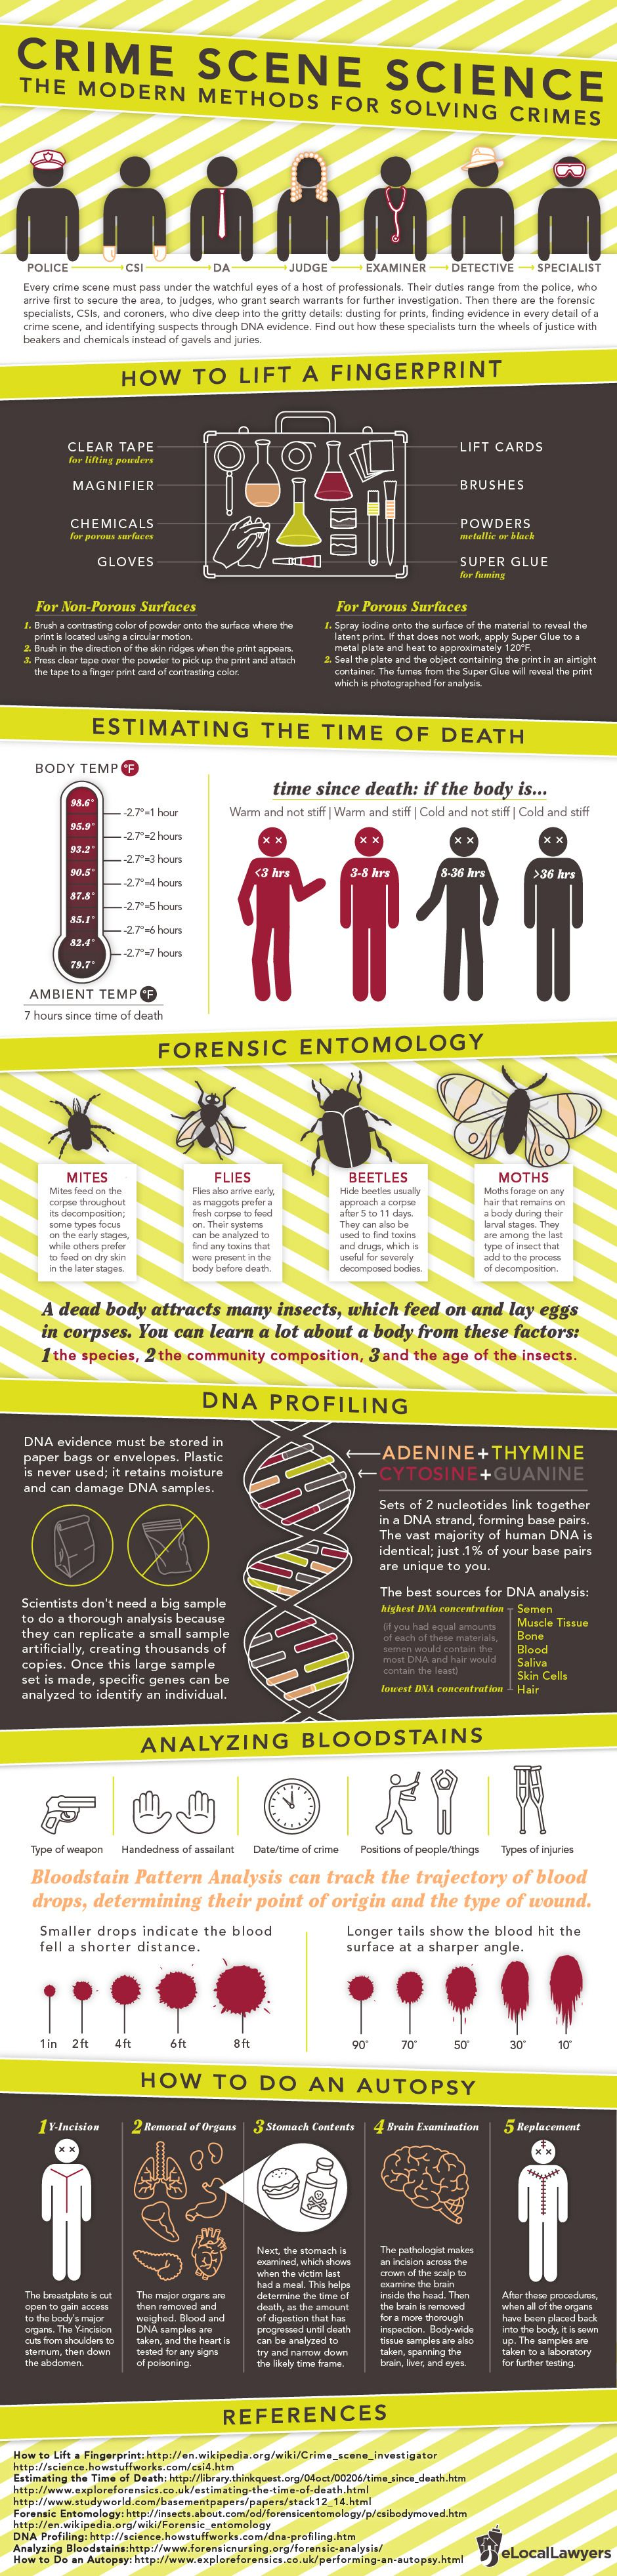 Crime Scene Investigation [ INFOGRAPHIC ]   Infographic File -  Week of (Forensic) Science - #TeenSRP13 #UniversityOfSwag